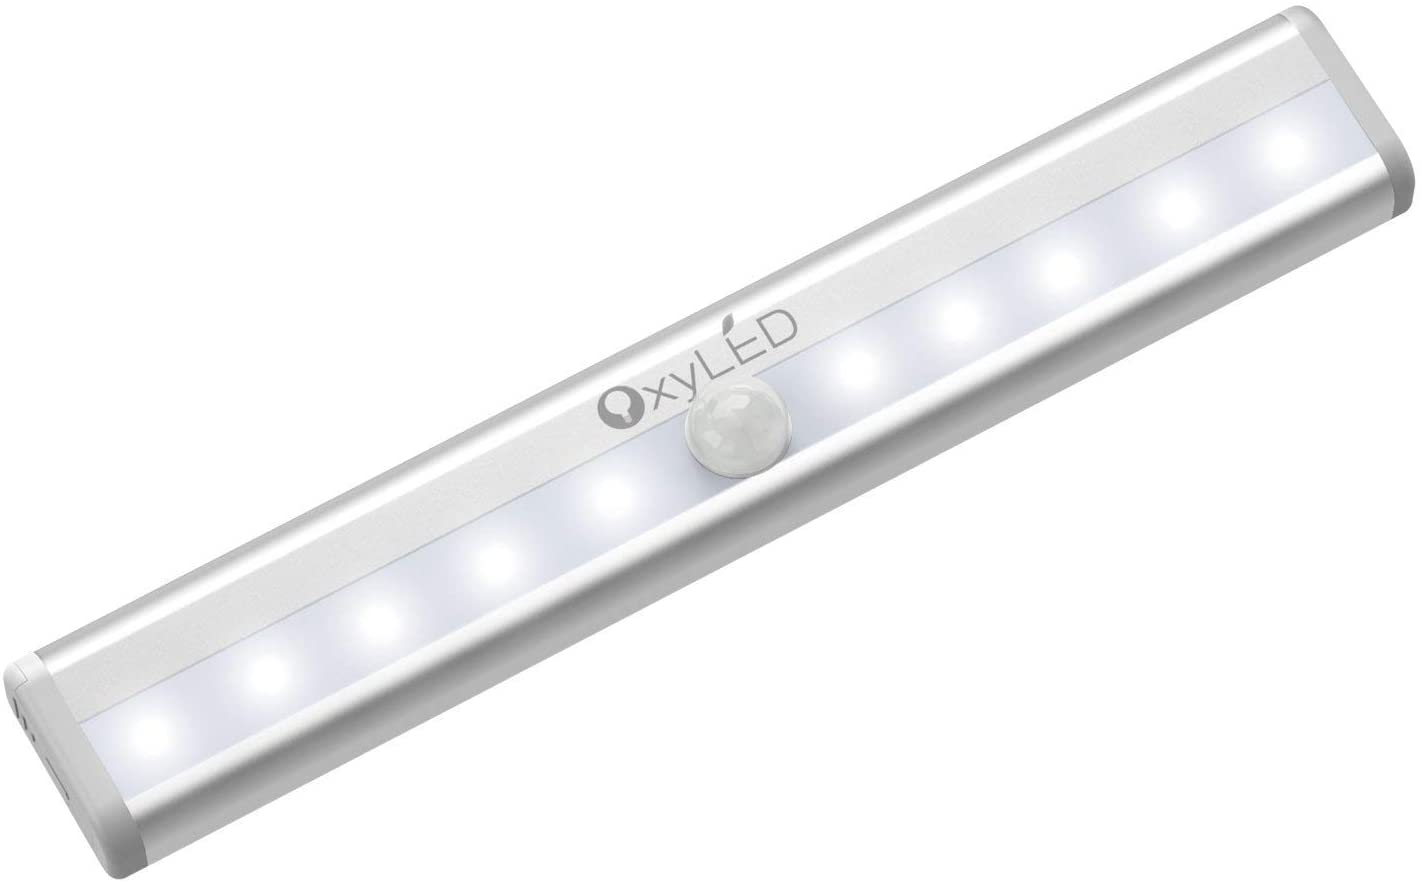 OxyLED Motion Sensor Closet Lights, Cordless Under Cabinet Lightening, Wireless Stick-on Anywhere Battery Operated 10 LED Night Light Bar, Safe Lights for Closet Cabinet Wardrobe Stairs (1 Pack)